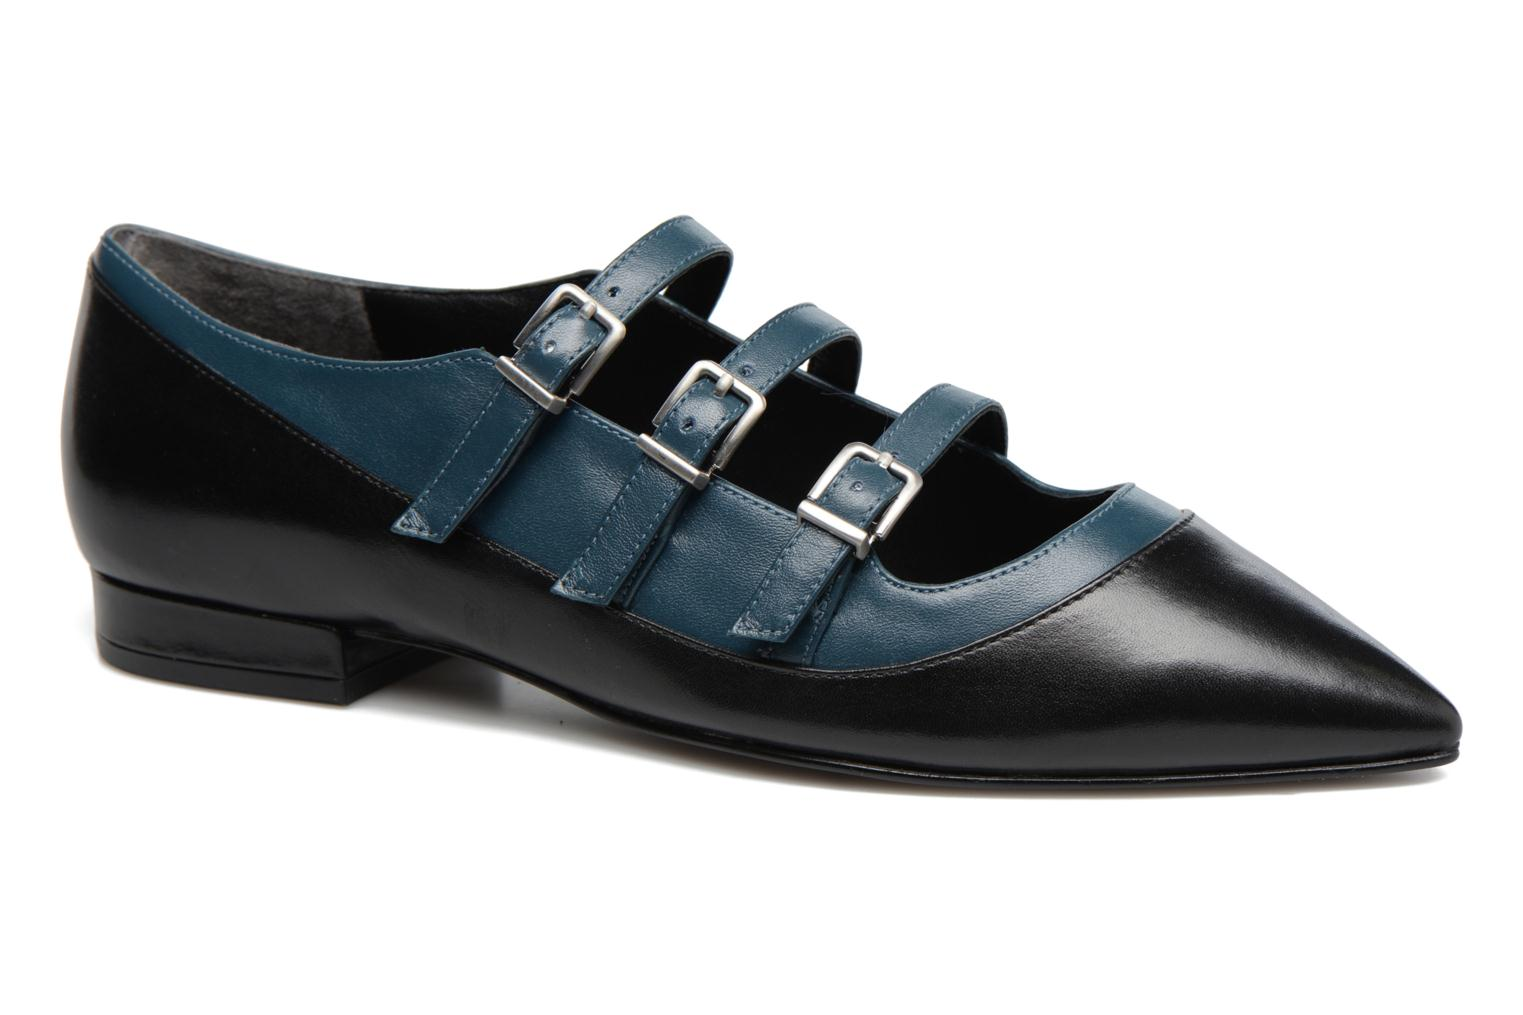 Marques Chaussure femme What For femme Georgette Calf Black